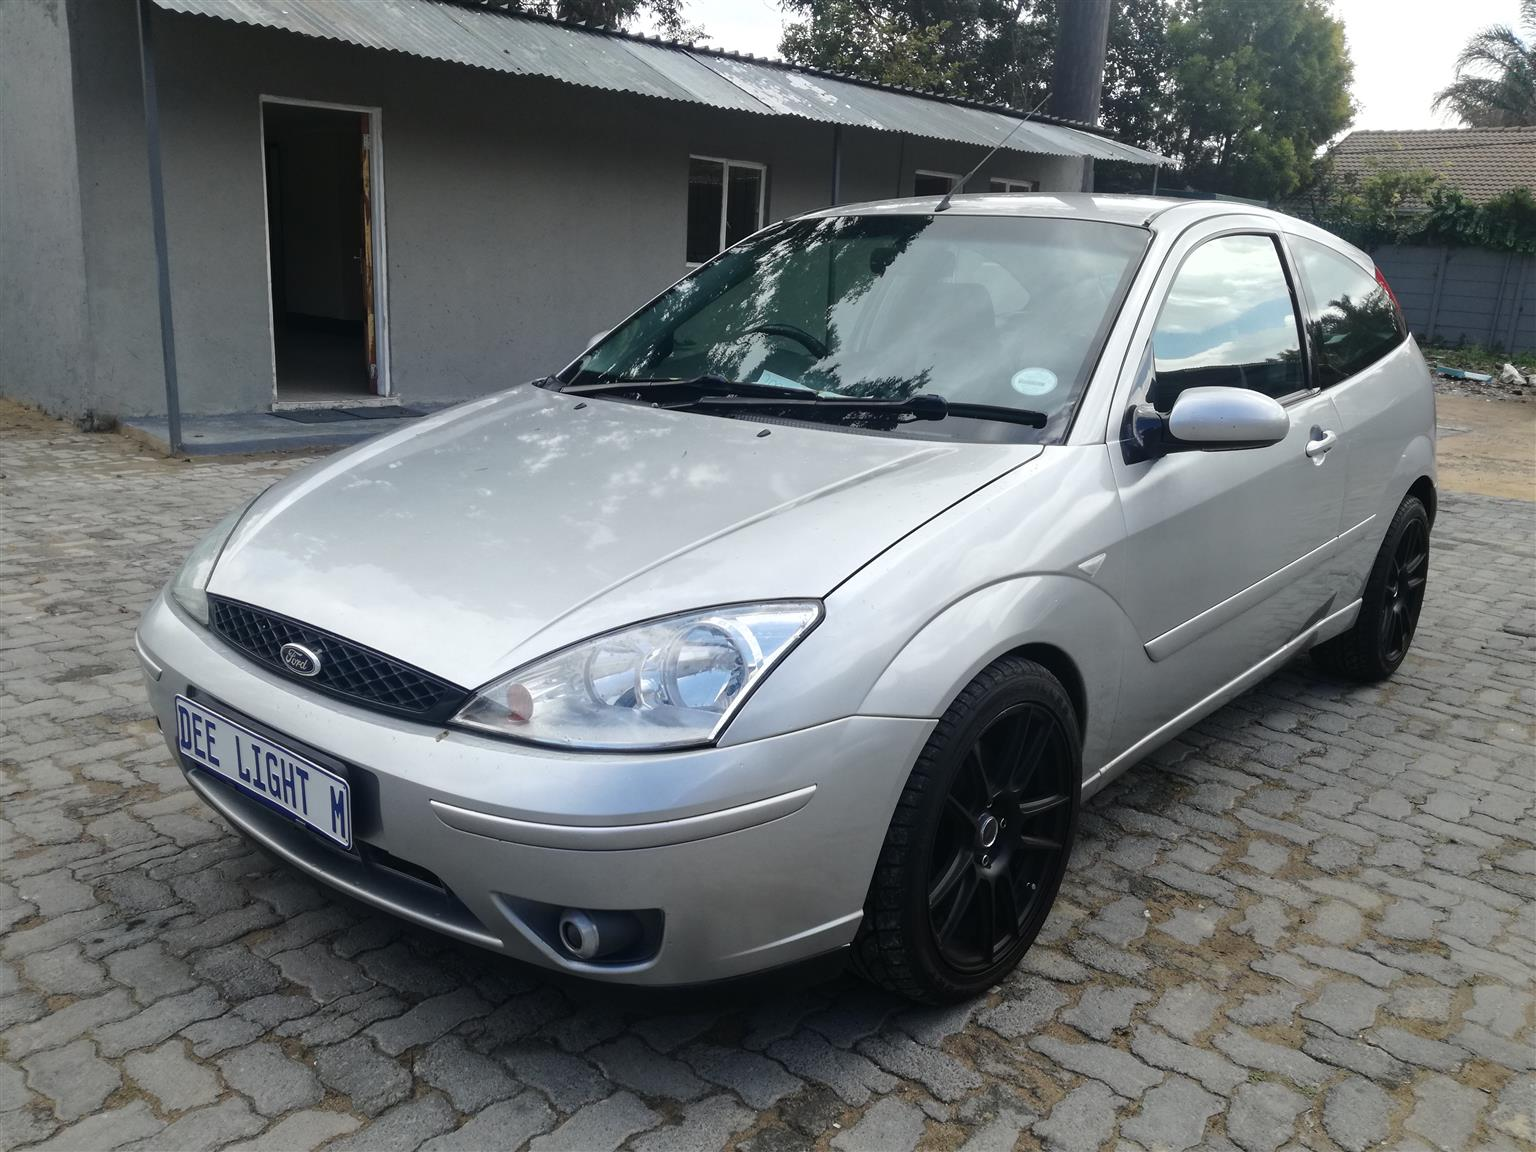 2005 Ford Focus ST 3 door